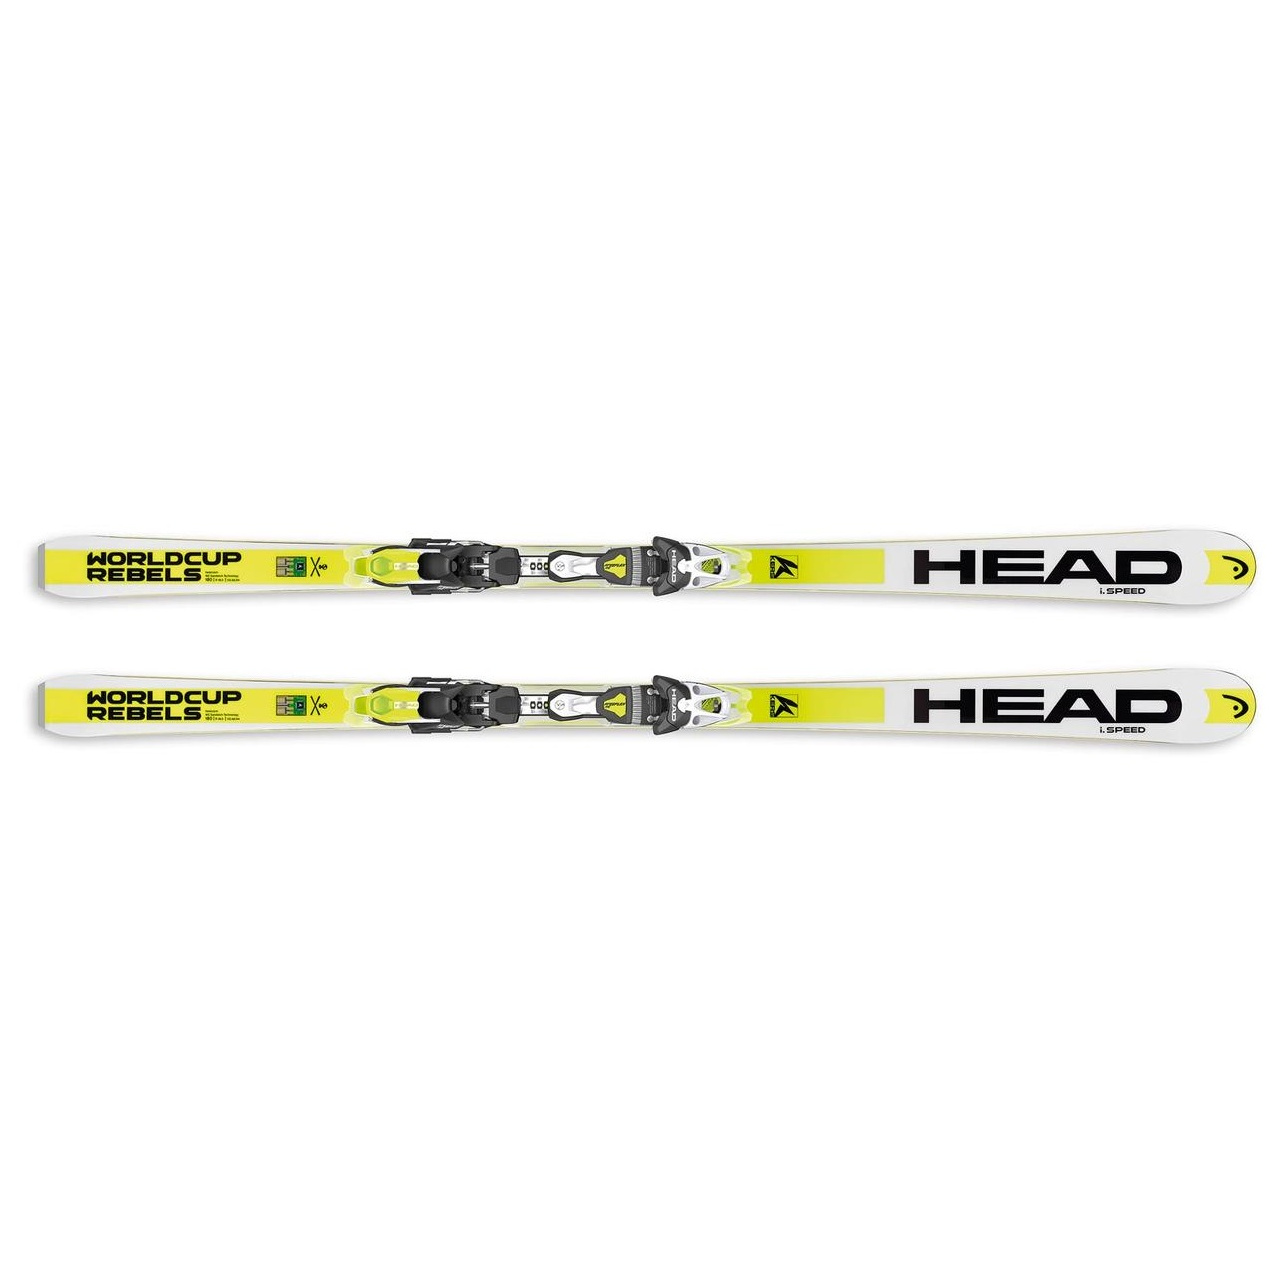 Head Wc Rebels Ispeed/Ff Pro 11 2016